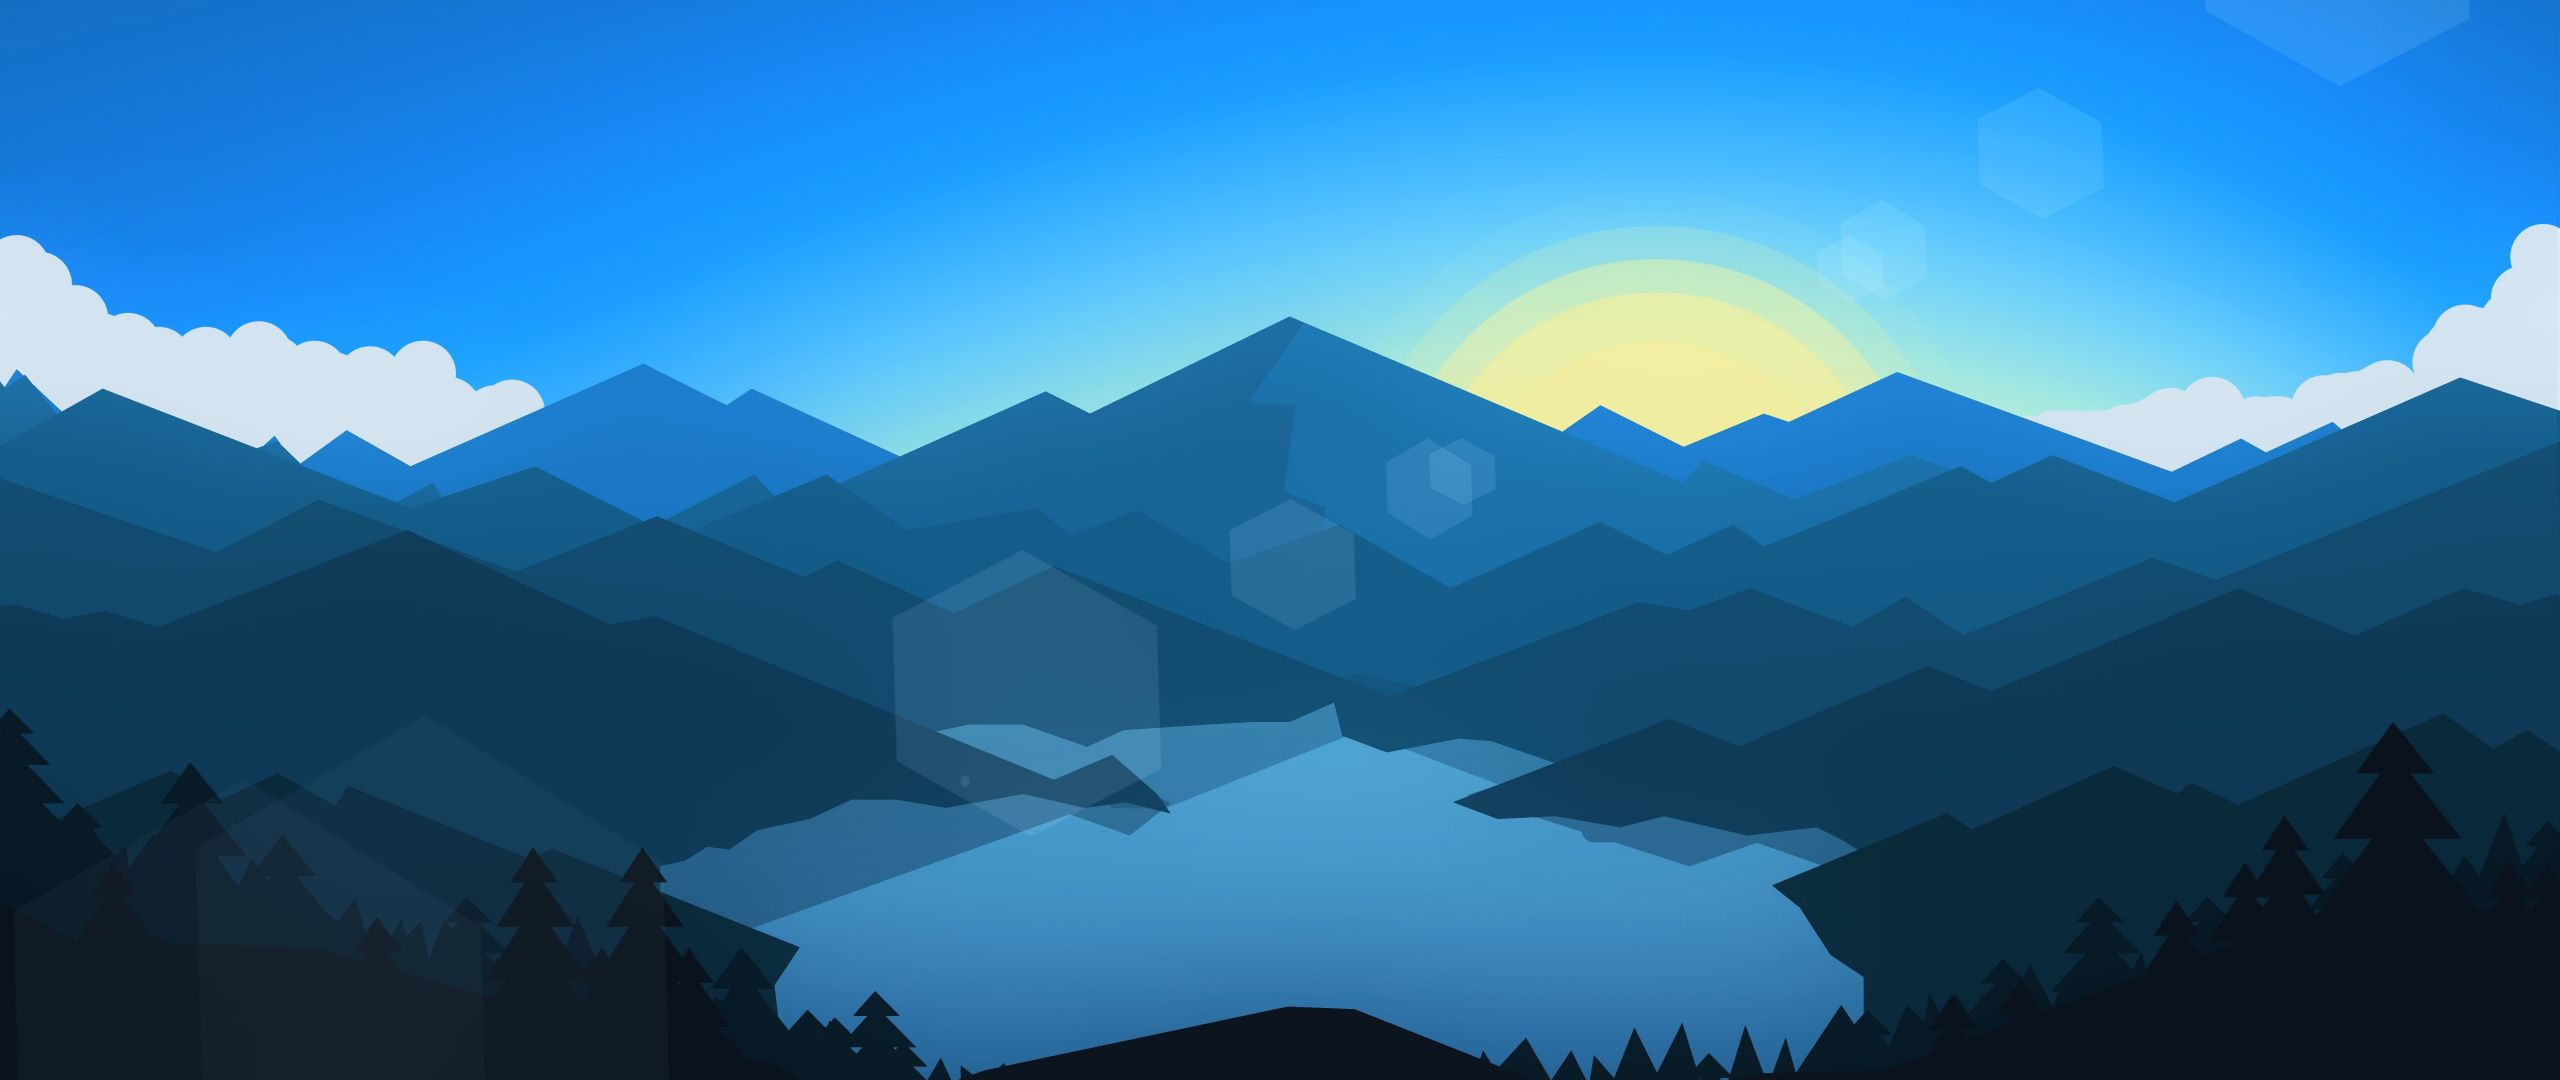 2560x1080 Download 2560x1080 wallpaper forest, mountains, sunset, cool